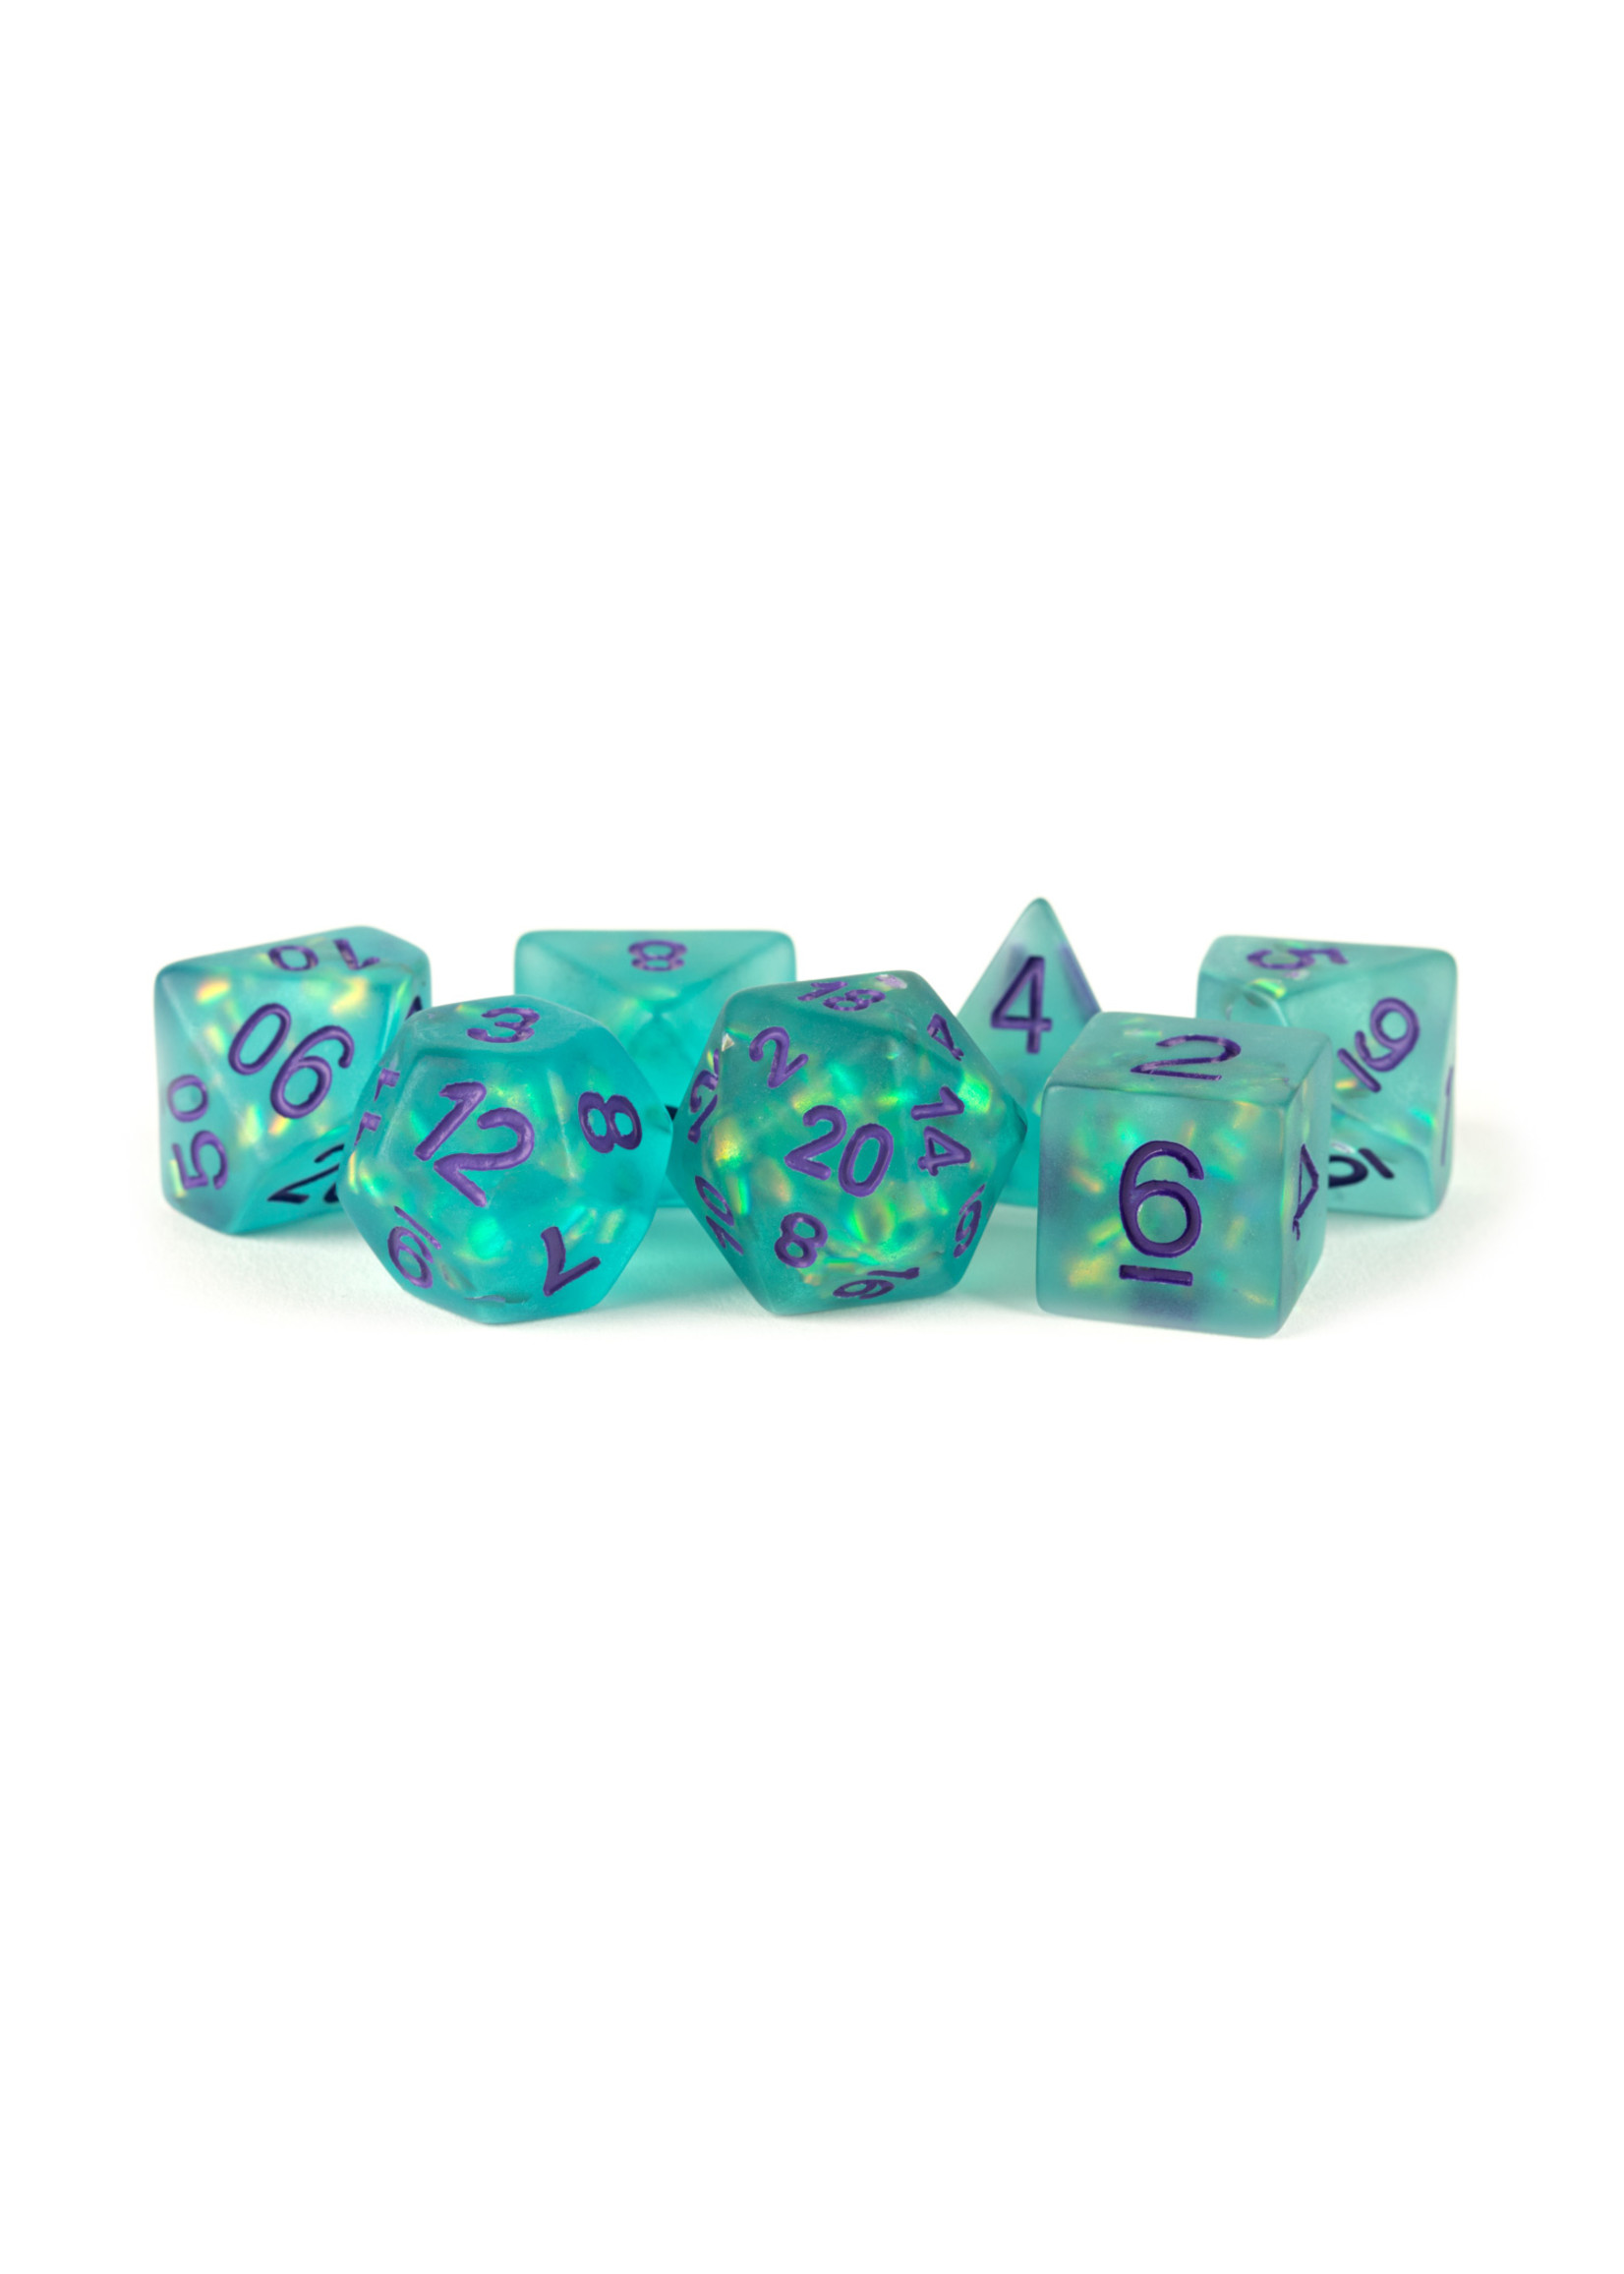 Icy Opal Resin: 16mm Dice Poly Set Teal/Purple Numbers (7)